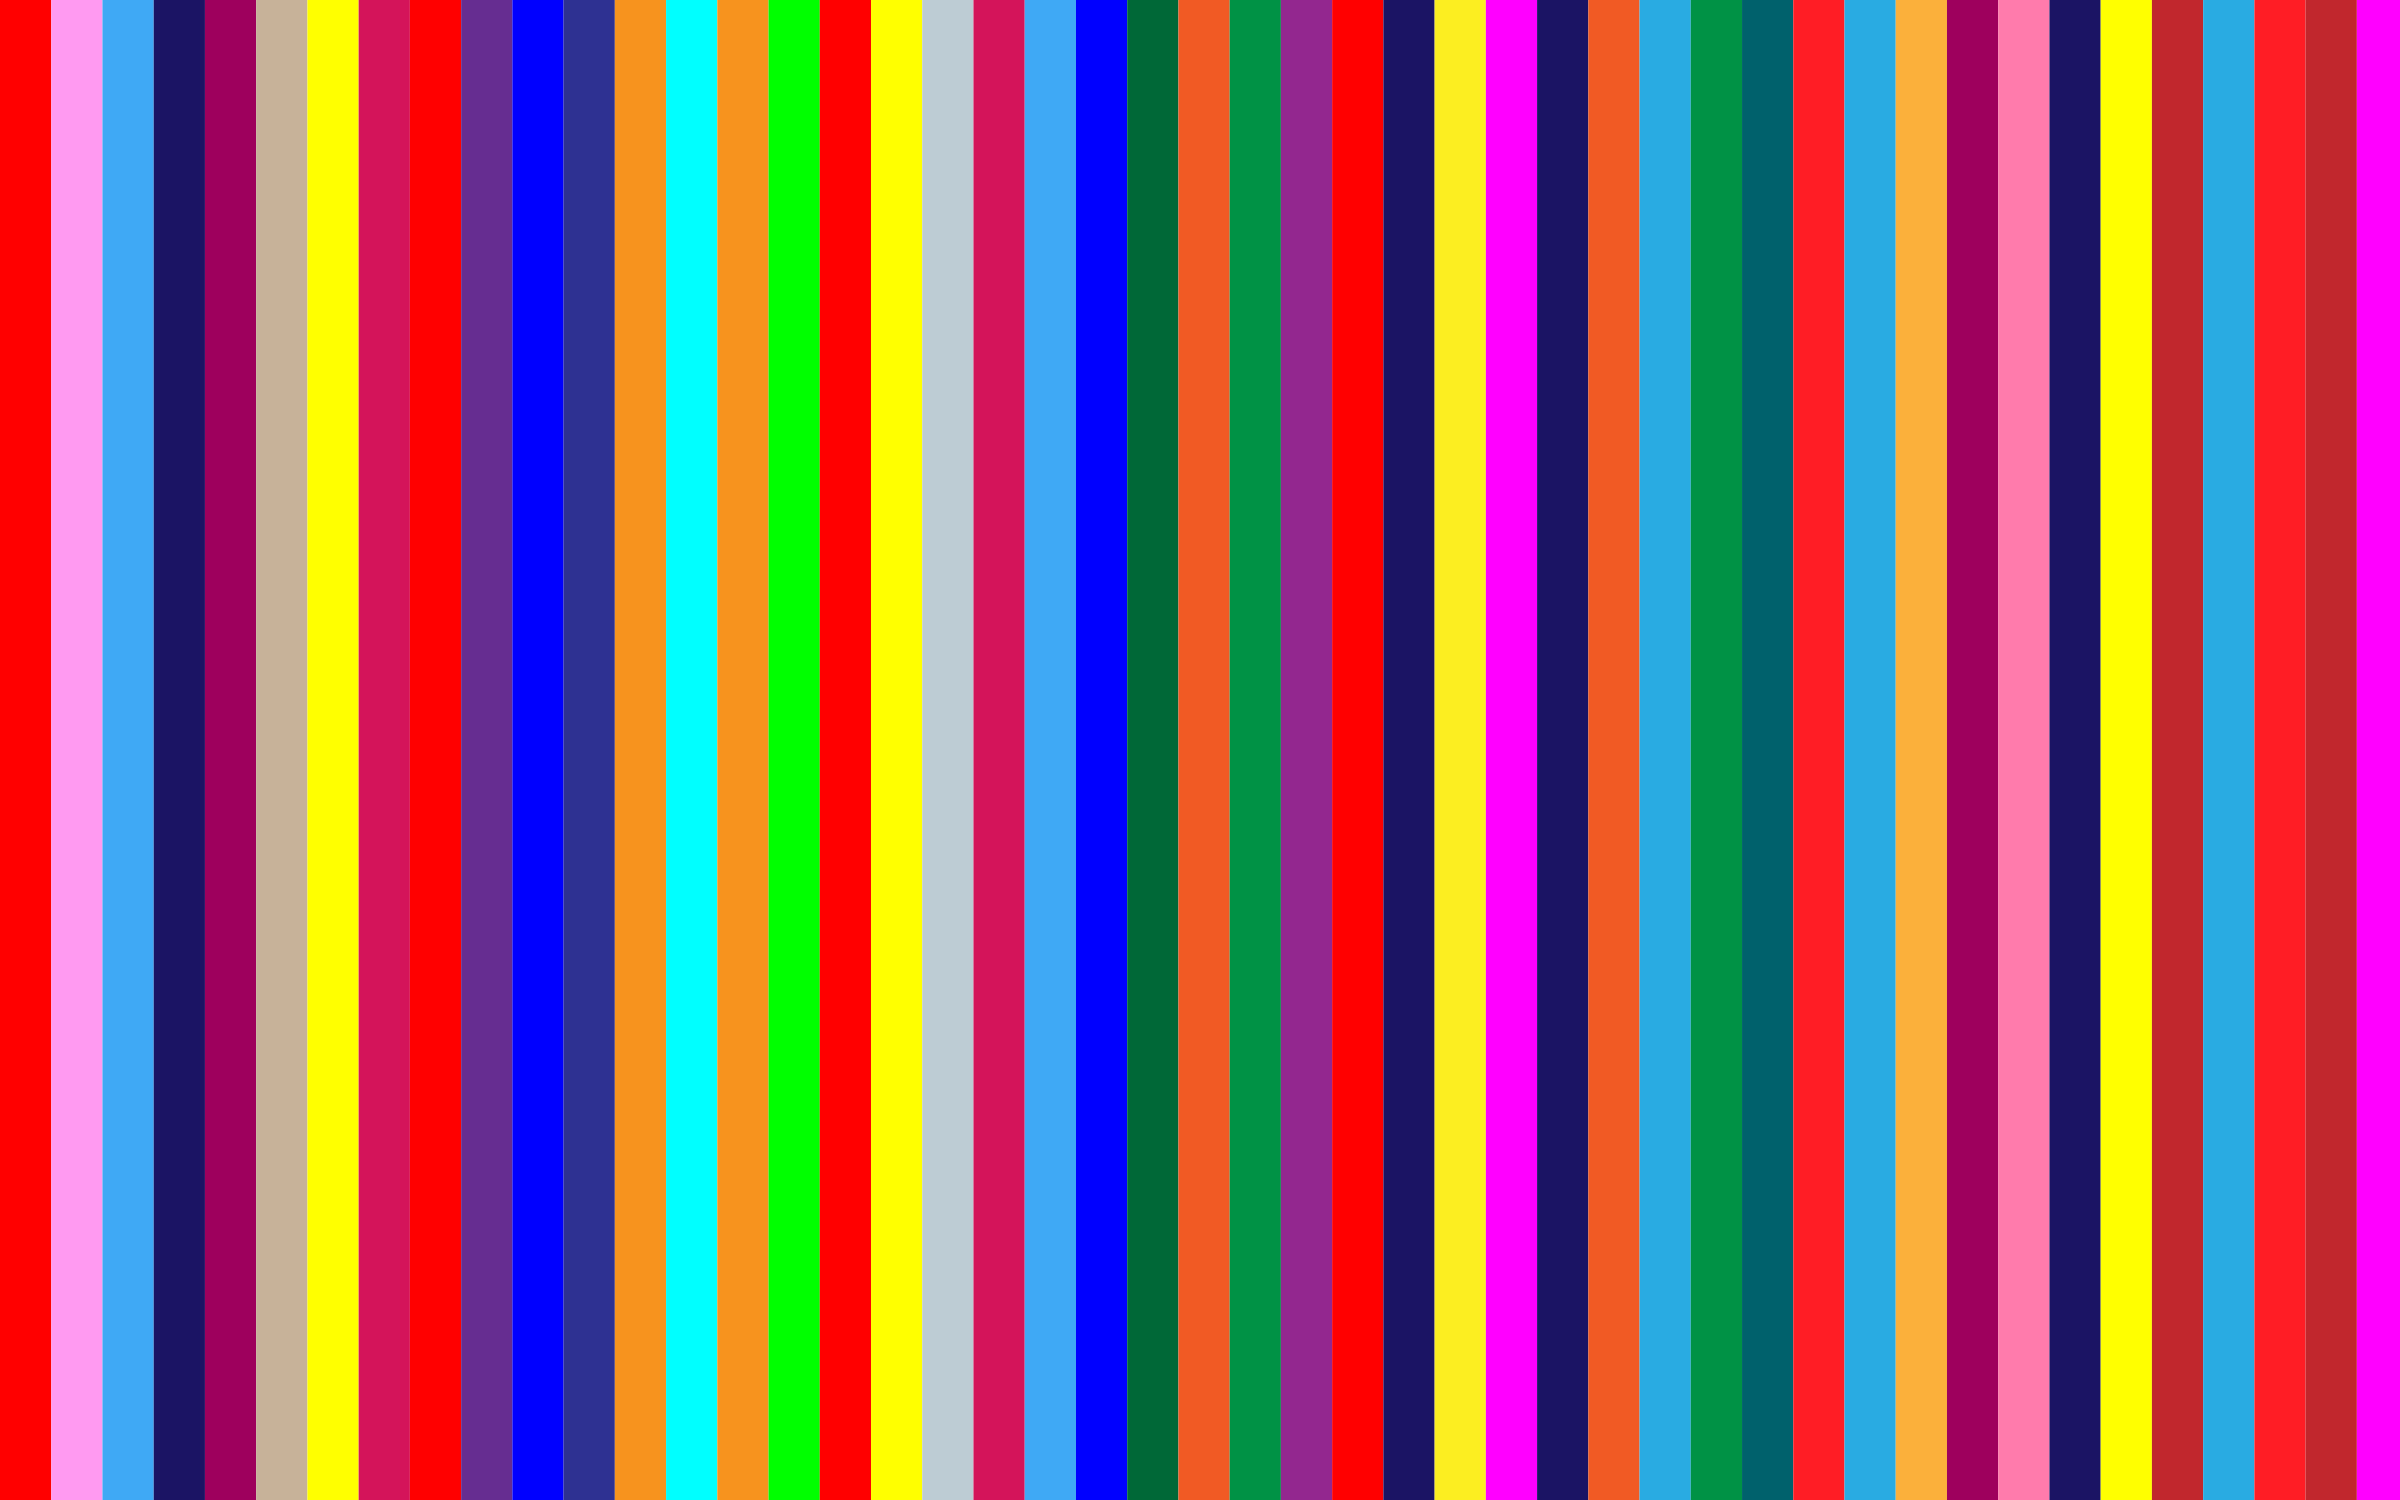 colorful strips